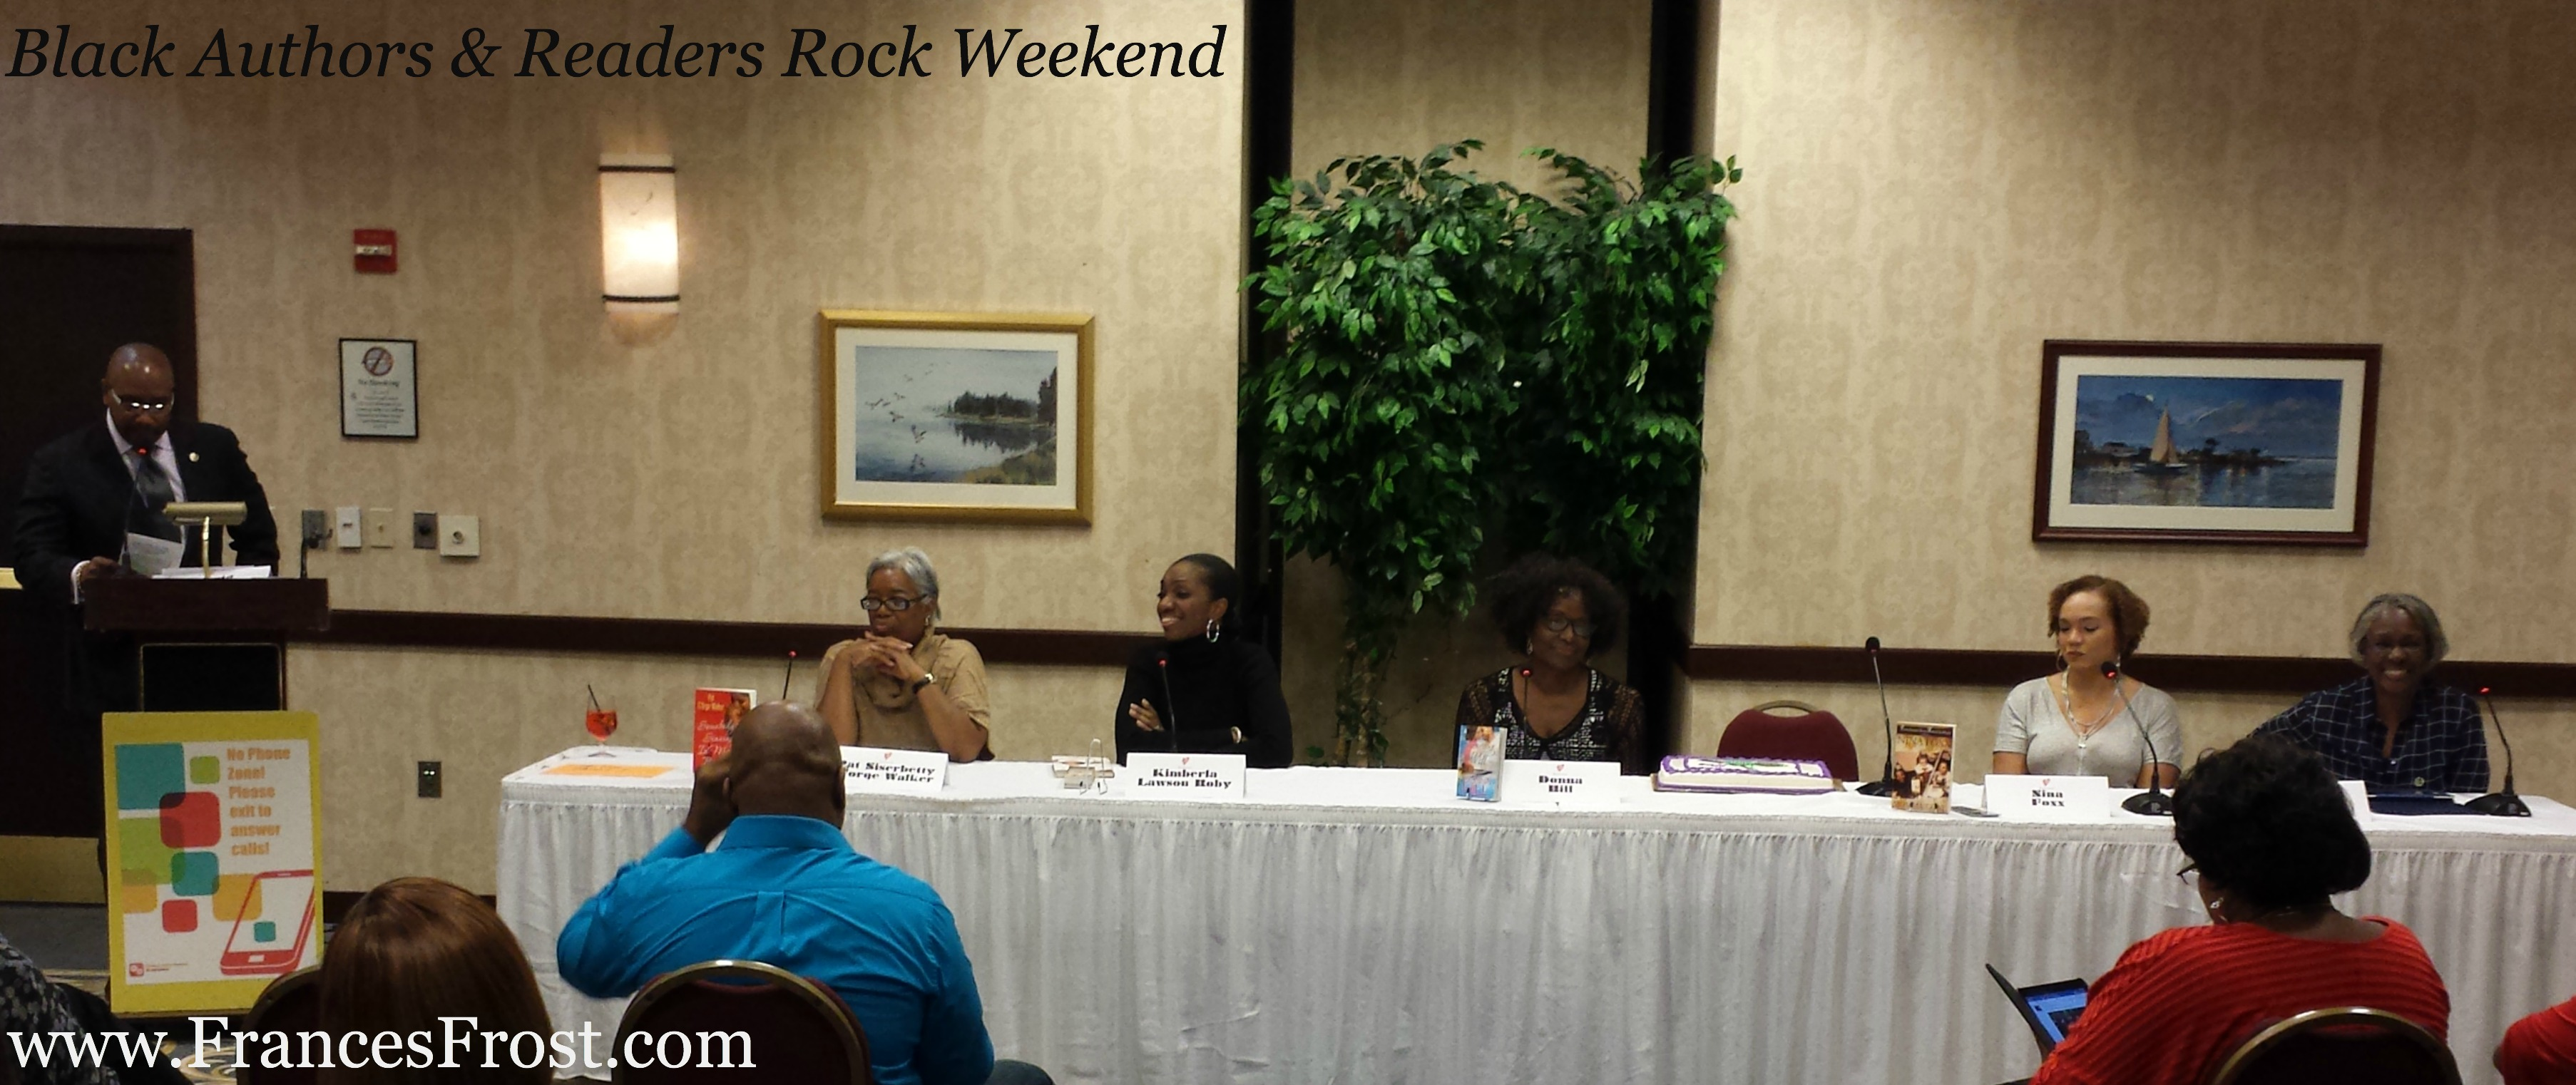 Black Authors & Readers Rock Weekend - Literary Trailblazers